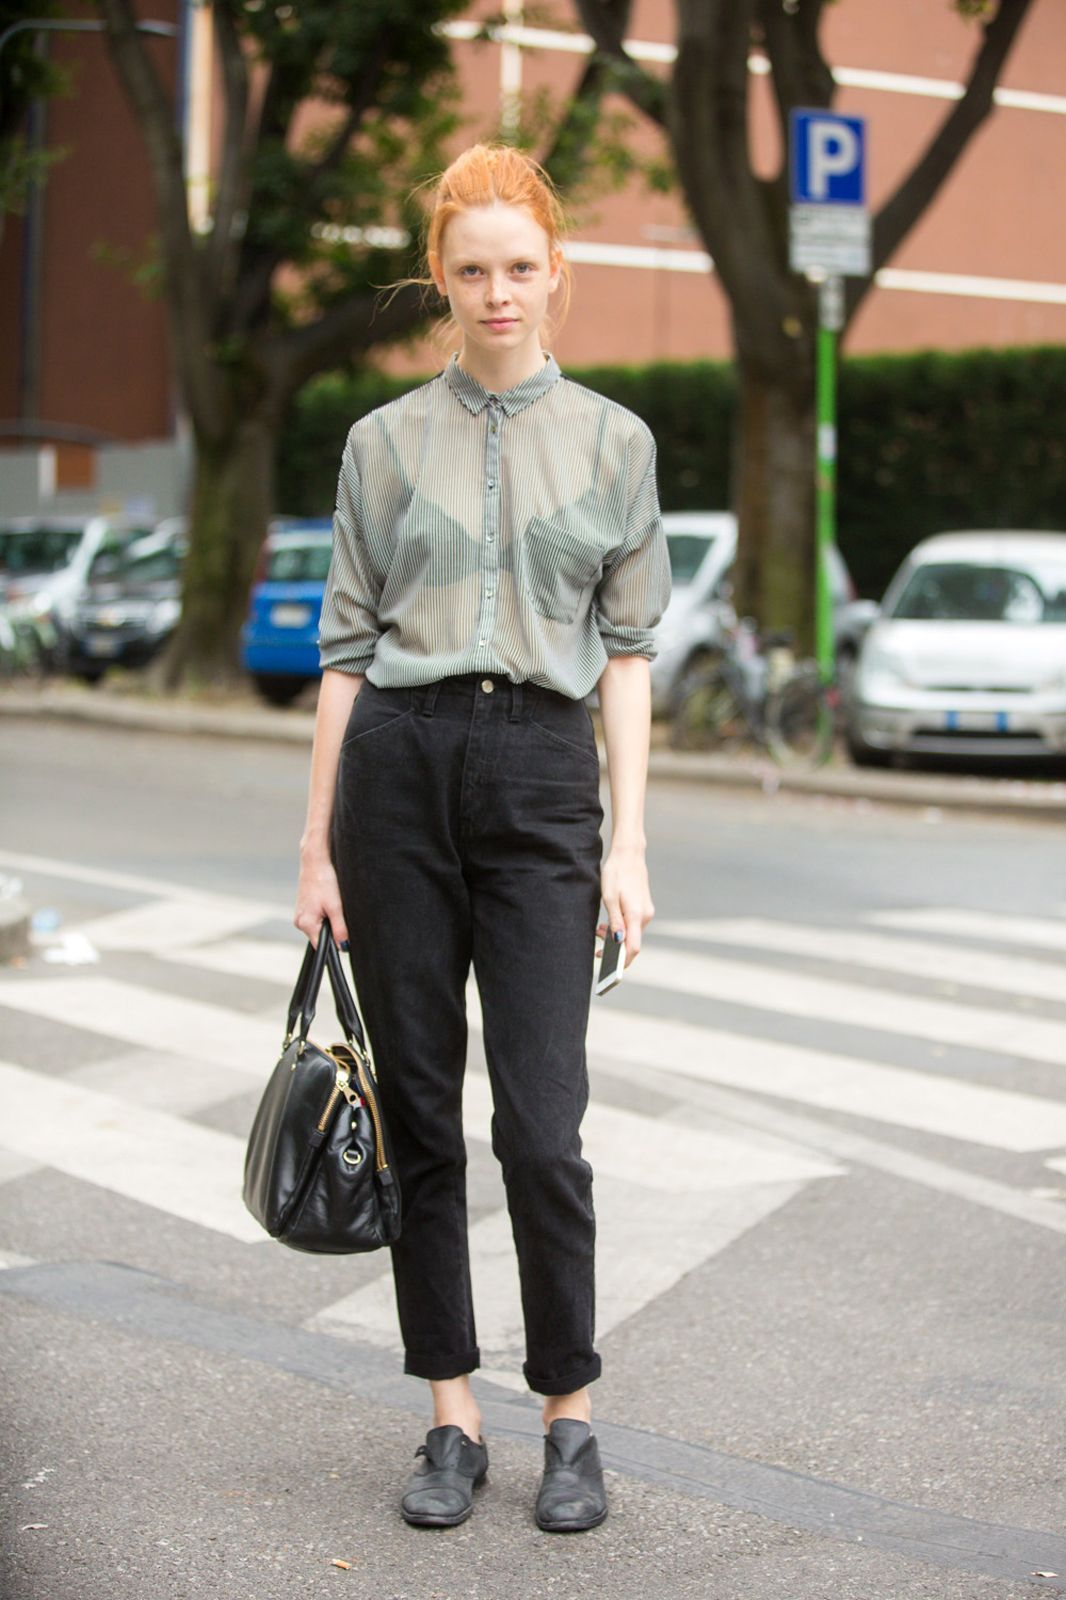 ed9a0010 Blue long-sleeved button-up blouse (tucked in and rolled up), black  high-rise cropped straight jeans, black oxfords